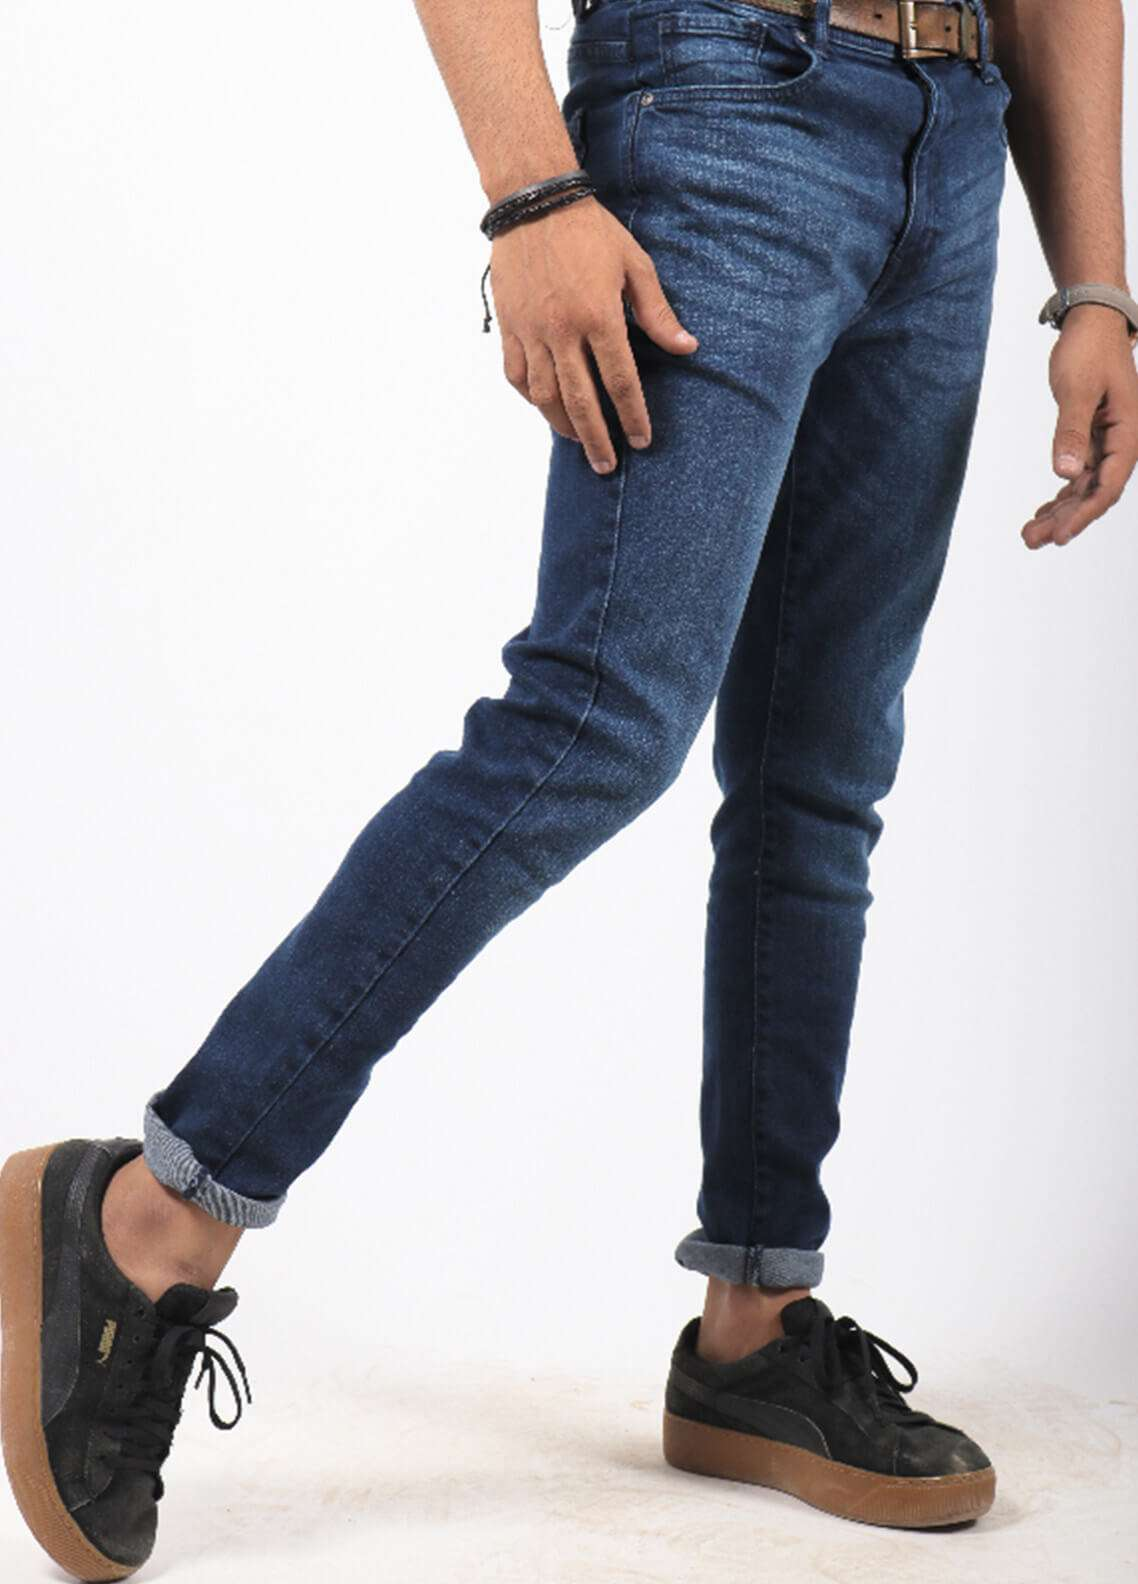 Red Tree Denim Casual Jeans for Men - Blue RTP162